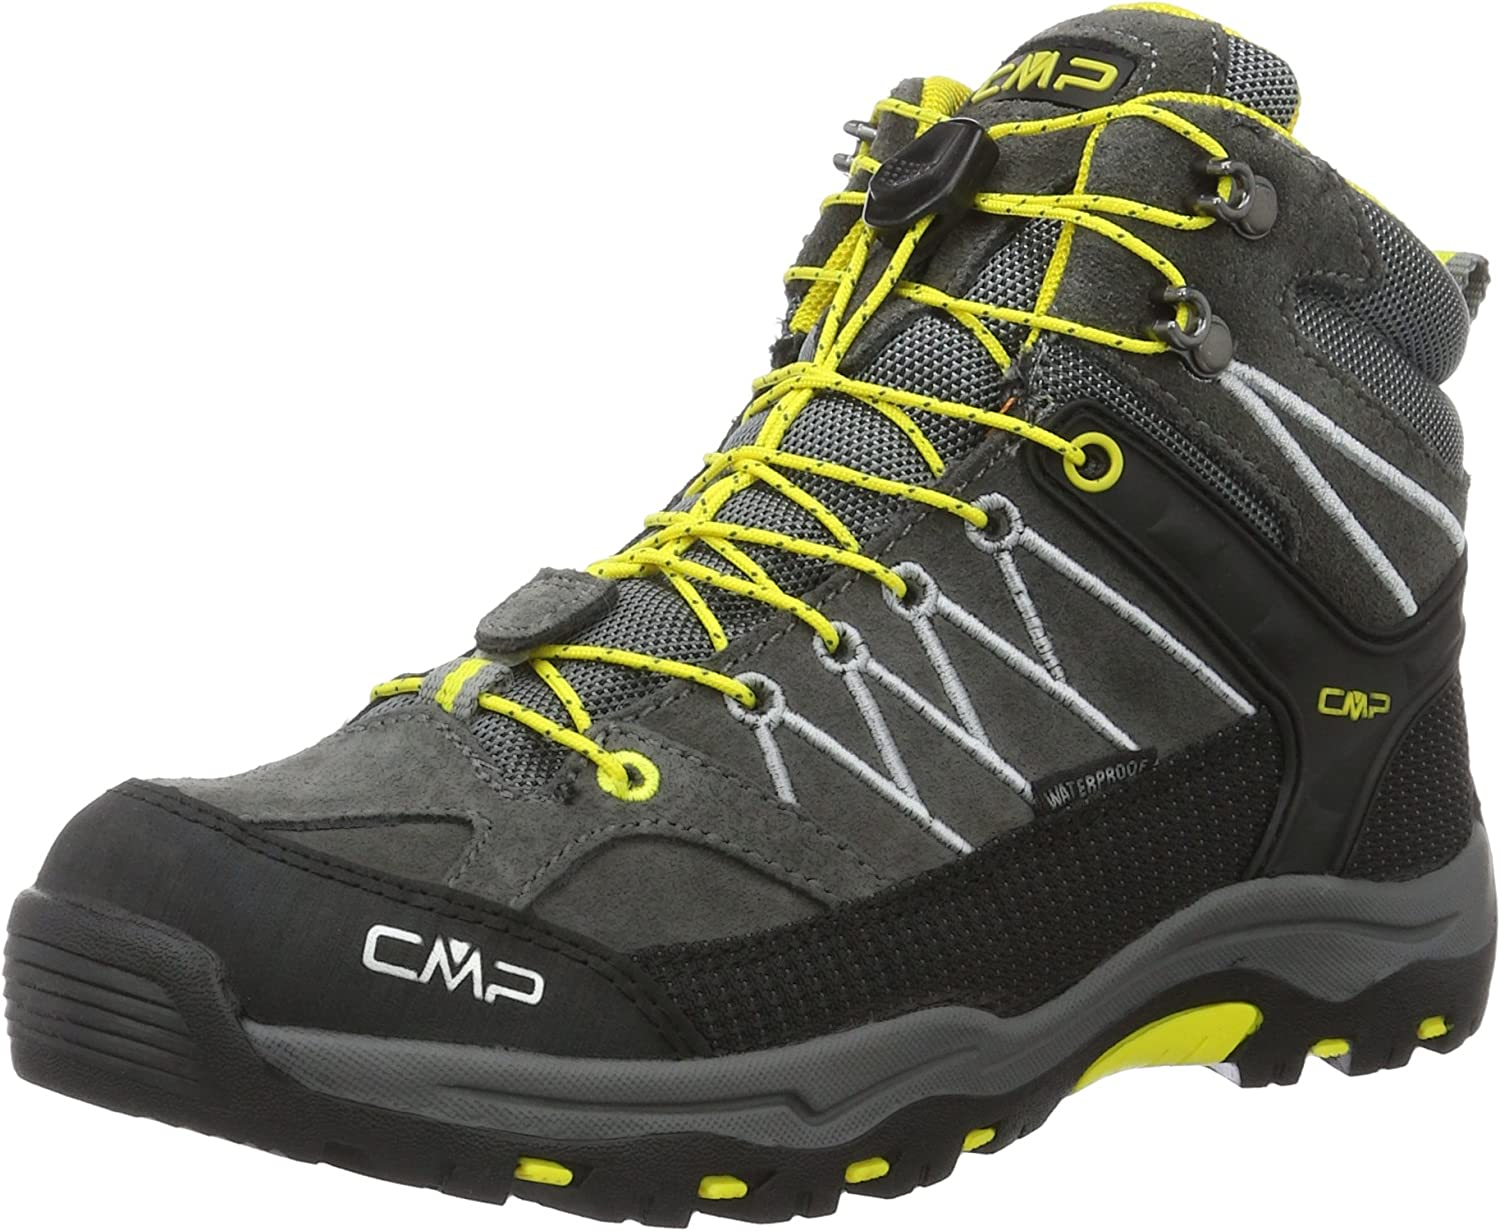 CMP Unisex Kids' Rigel Mid Wp High Rise Hiking Boots